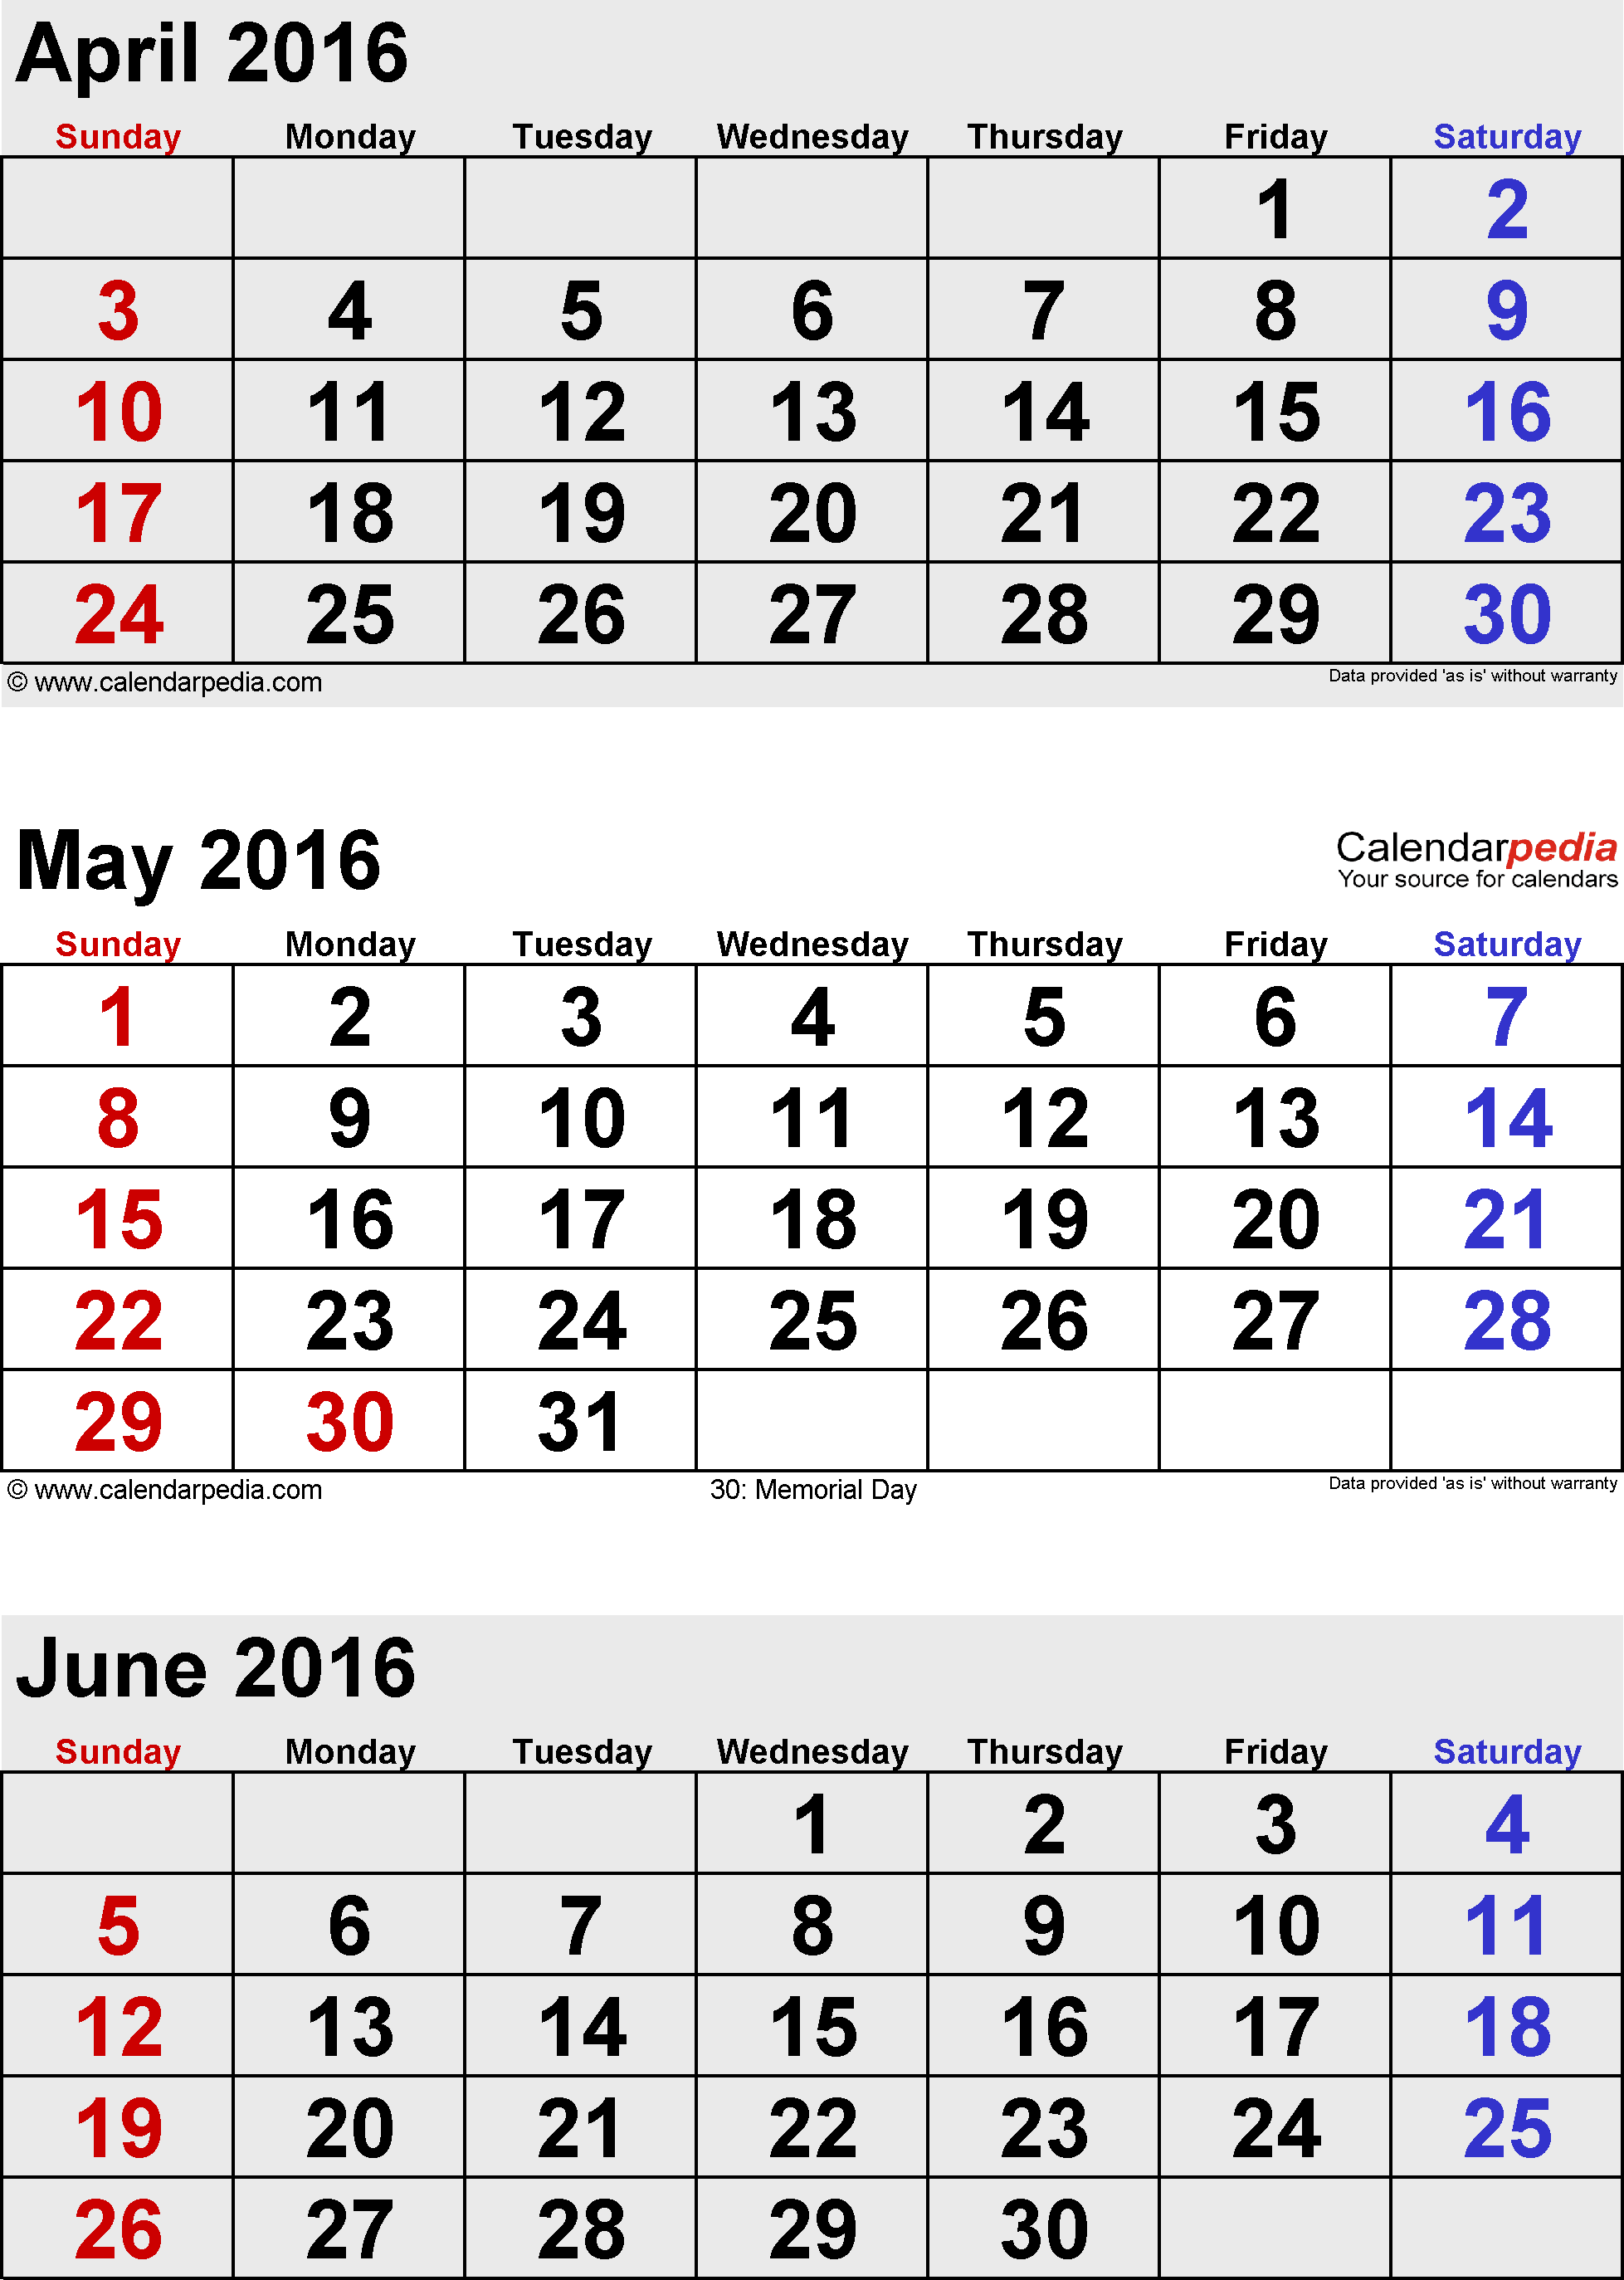 3 months calendar May/June/July 2016 in portrait format